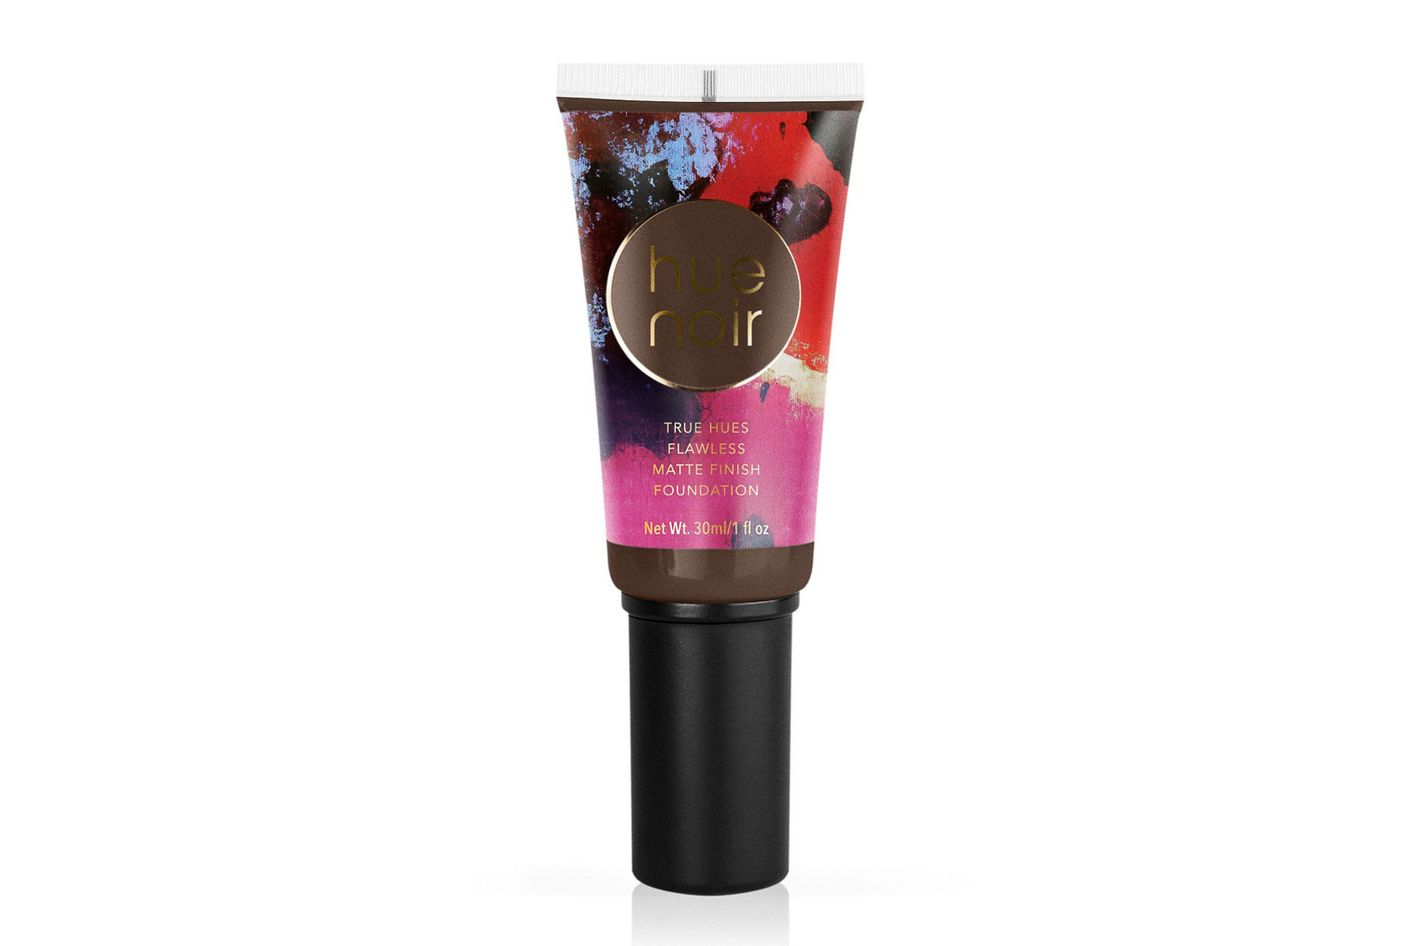 Hue Noir True Hues Flawless Matte Foundation in Deep-Carob